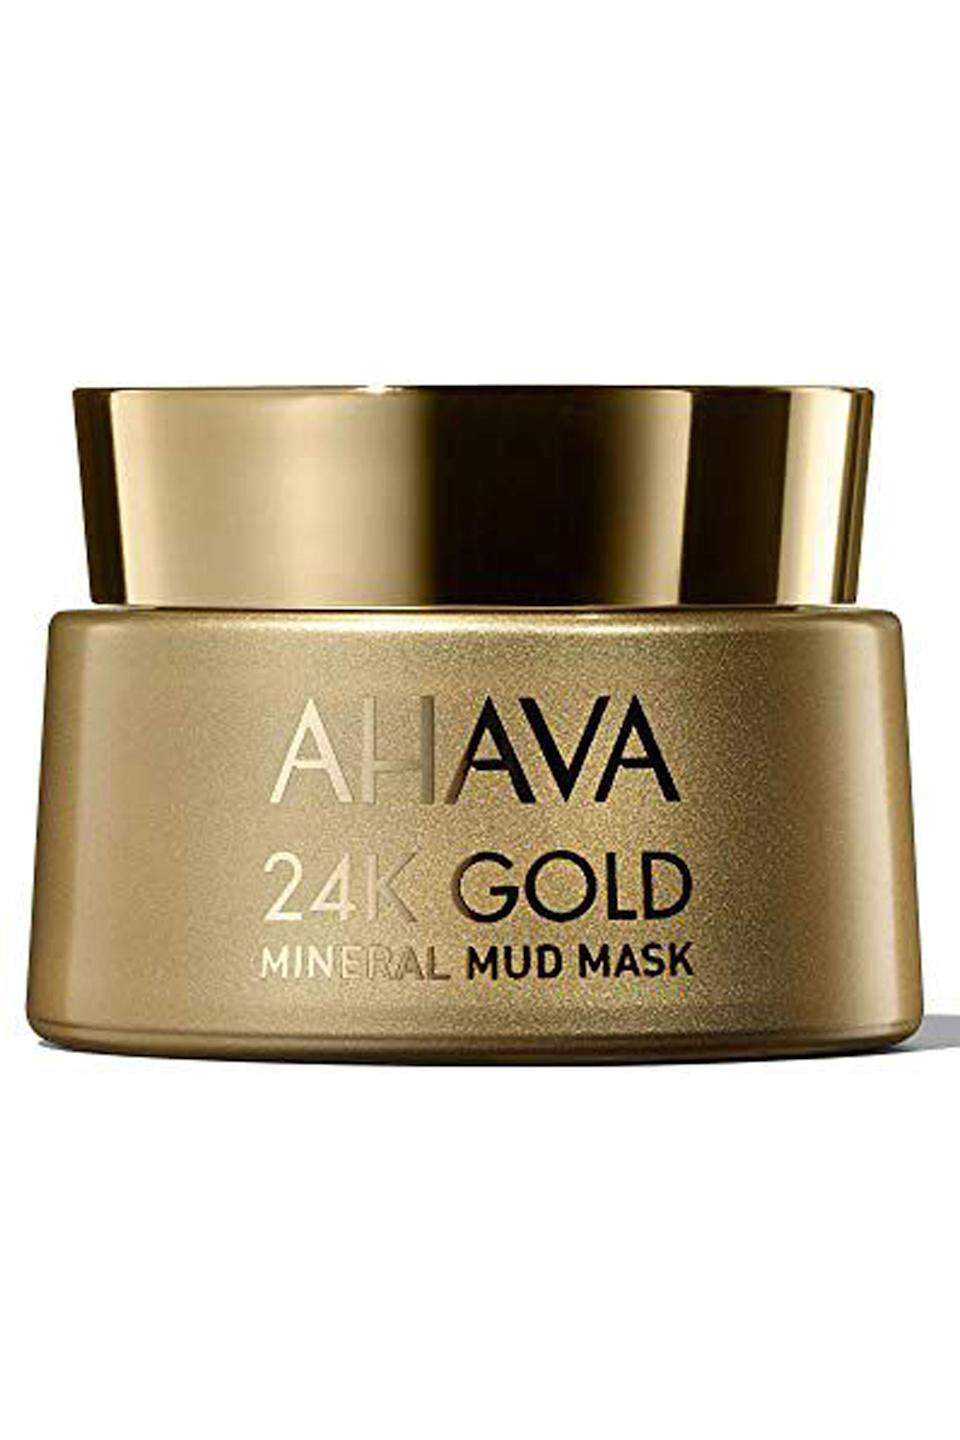 """<p><strong>AHAVA</strong></p><p>amazon.com</p><p><strong>$68.00</strong></p><p><a href=""""http://www.amazon.com/dp/B011UC0IS0/?tag=syn-yahoo-20&ascsubtag=%5Bartid%7C10049.g.4577%5Bsrc%7Cyahoo-us"""" rel=""""nofollow noopener"""" target=""""_blank"""" data-ylk=""""slk:Shop Now"""" class=""""link rapid-noclick-resp"""">Shop Now</a></p><p>It's not just the packaging that makes this <a href=""""https://www.cosmopolitan.com/style-beauty/beauty/g10285431/best-face-masks/"""" rel=""""nofollow noopener"""" target=""""_blank"""" data-ylk=""""slk:face mask"""" class=""""link rapid-noclick-resp"""">face mask</a> so luxe. The formula is<strong> made with actual mud from the Dead Sea</strong> that works to clean pores and brighten dull skin. Plus, the subtle shimmer the 24-karat gold leaves behind is a nice (Midas) touch.</p>"""